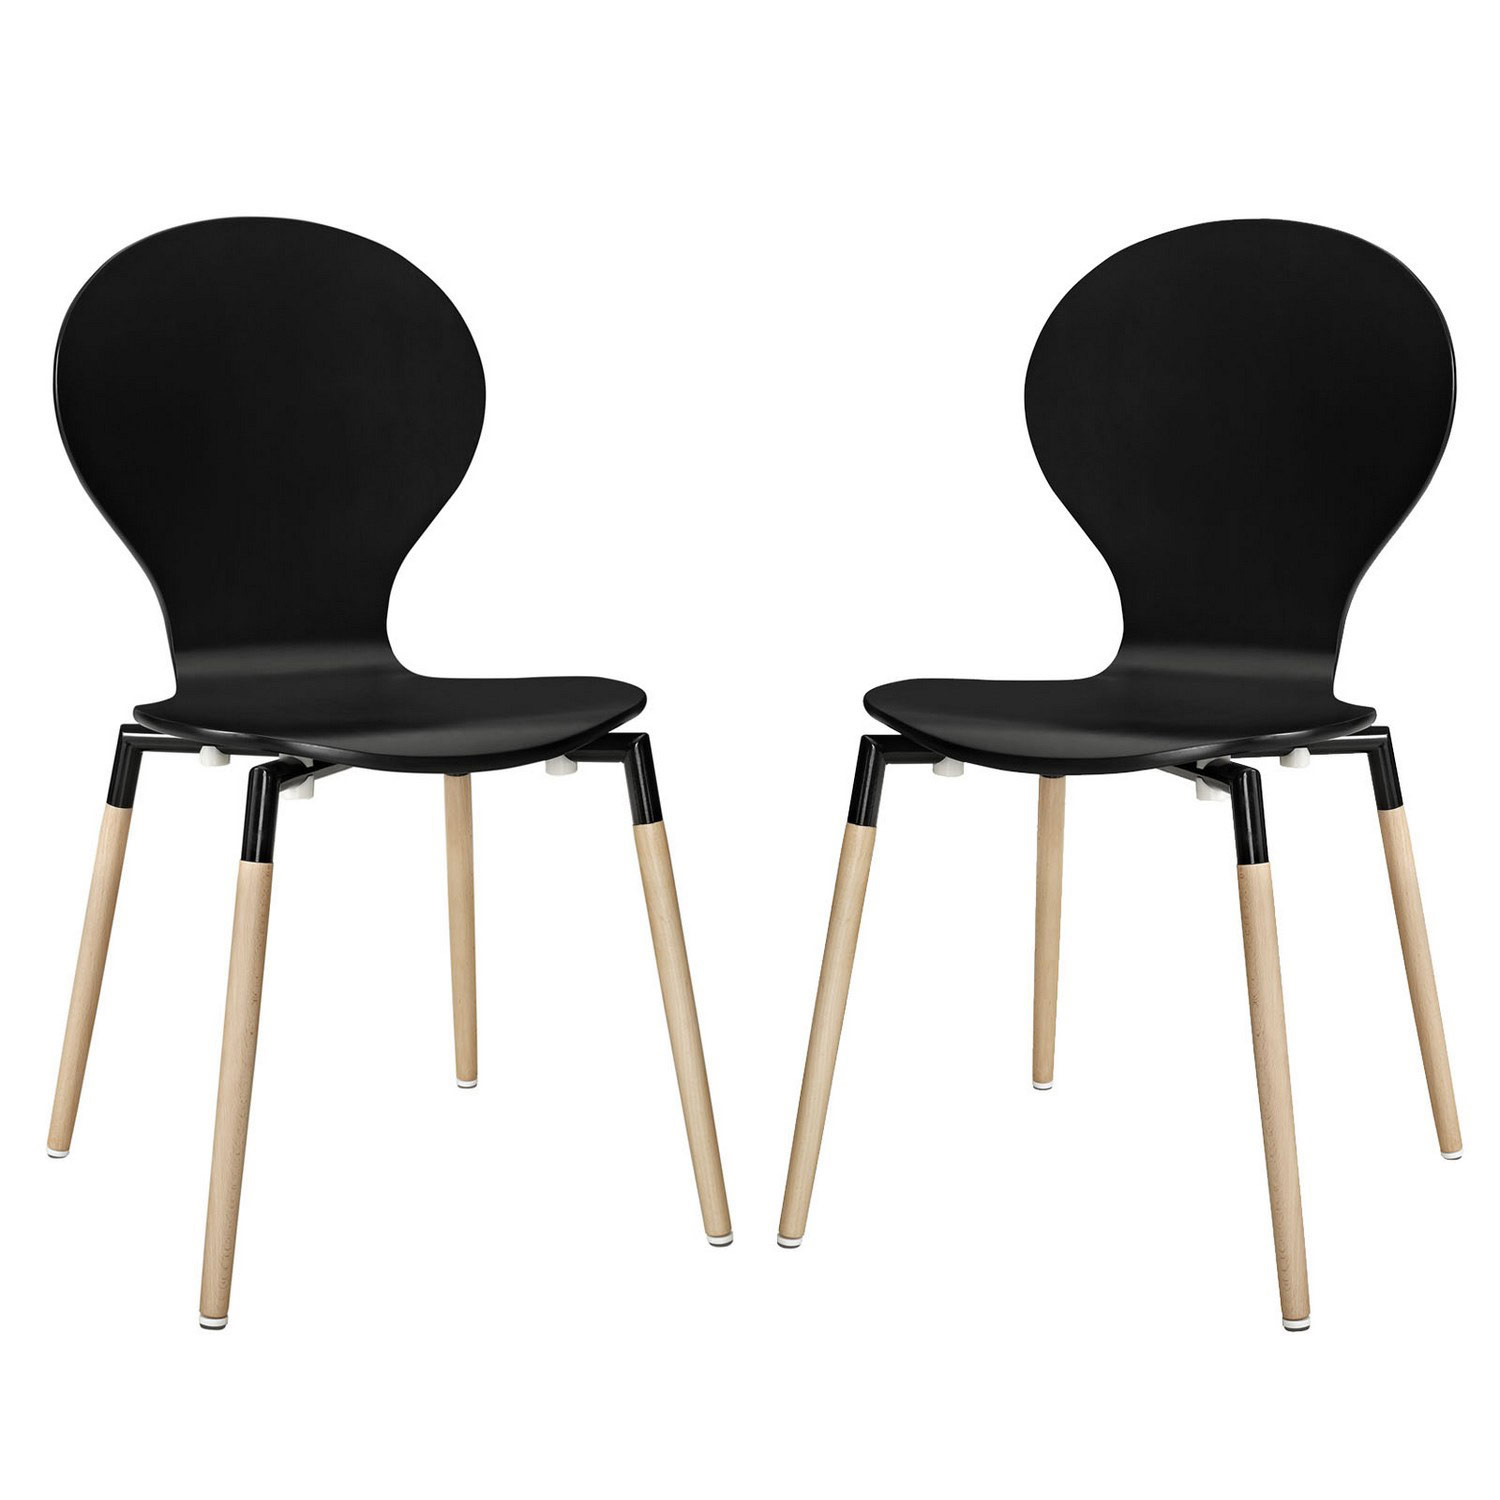 Modway Path Dining Chair Set of 2 - Black